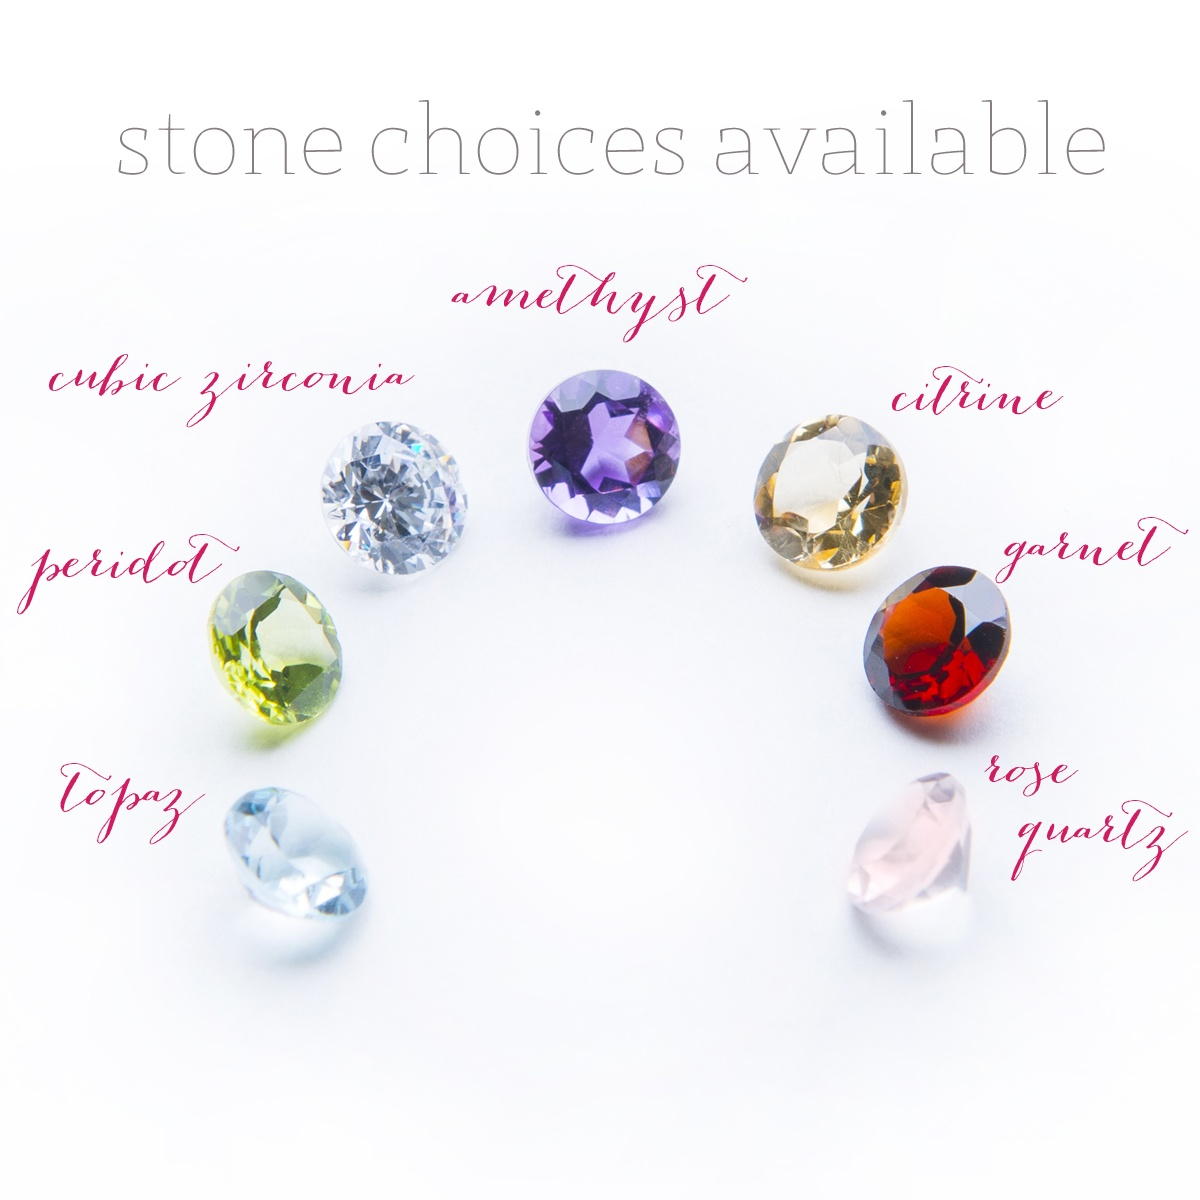 Semi precious gemstone choices available